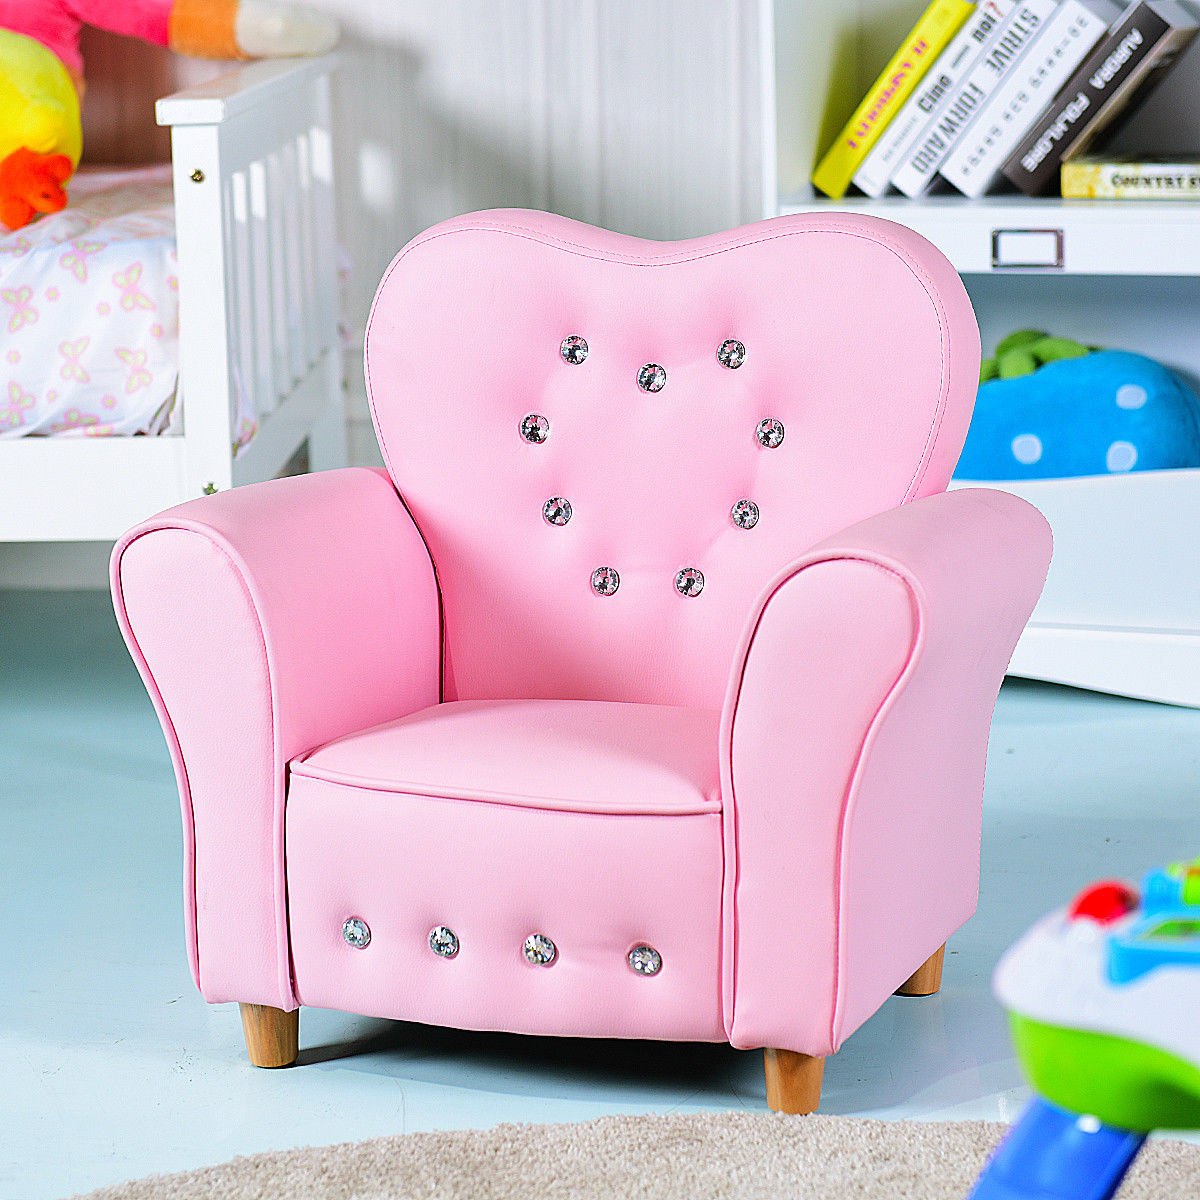 Gymax Pink Kids Teen Sofa Armrest Chair Couch Children Toddler